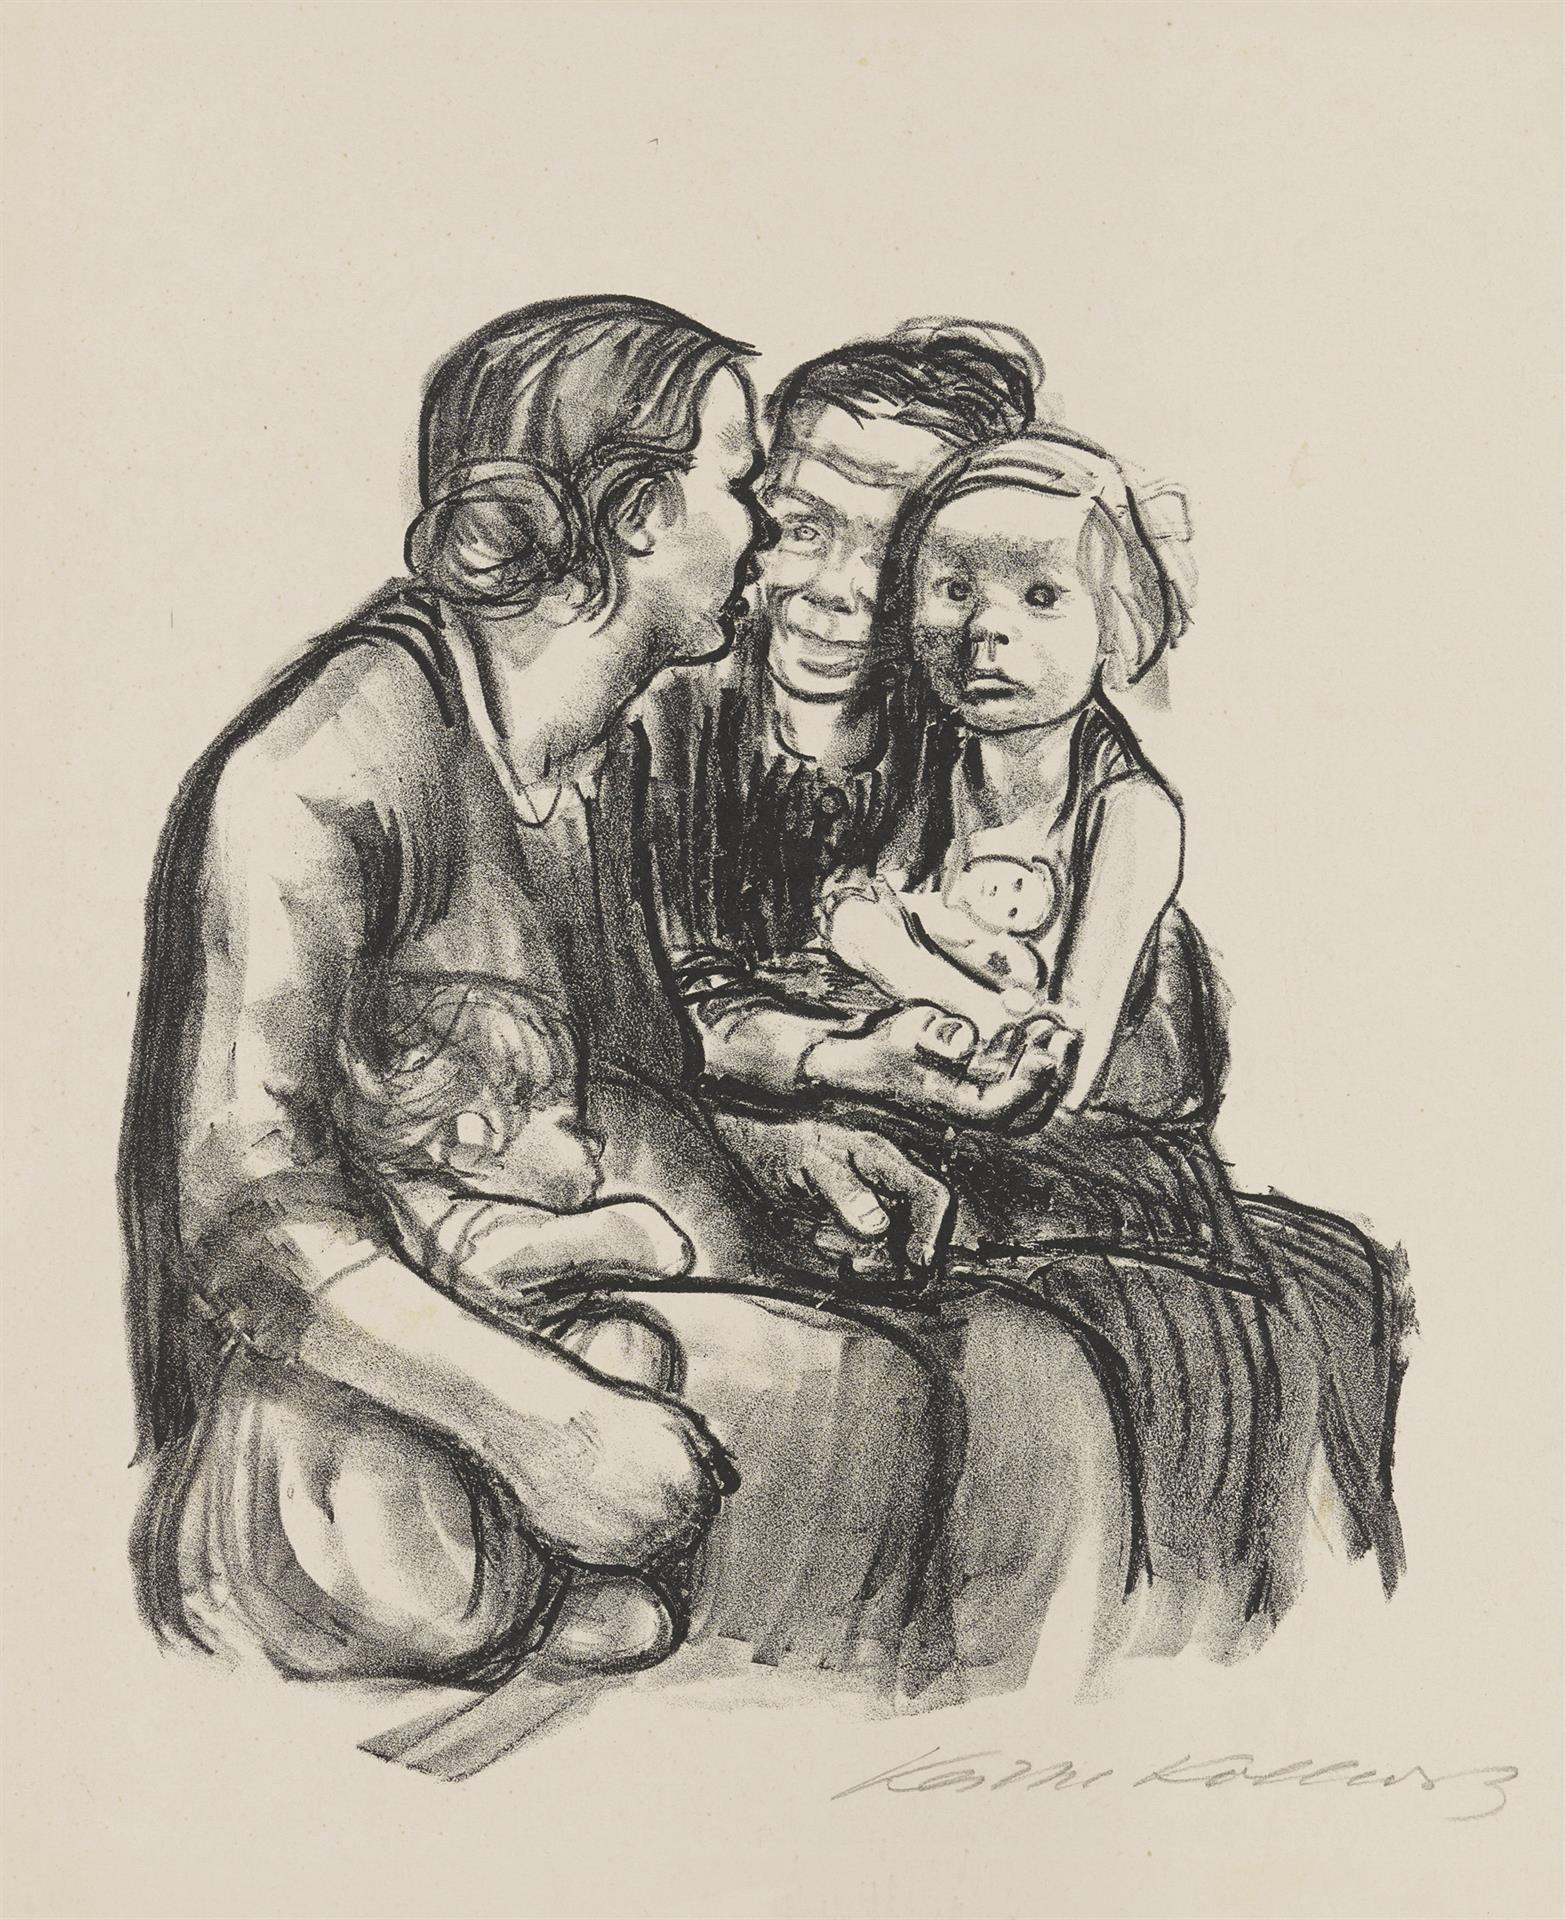 Käthe Kollwitz, Two Chatting Women with Two Children, final version, 1930, crayon lithograph (transfer), Kn 250 c, Cologne Kollwitz Collection © Käthe Kollwitz Museum Köln